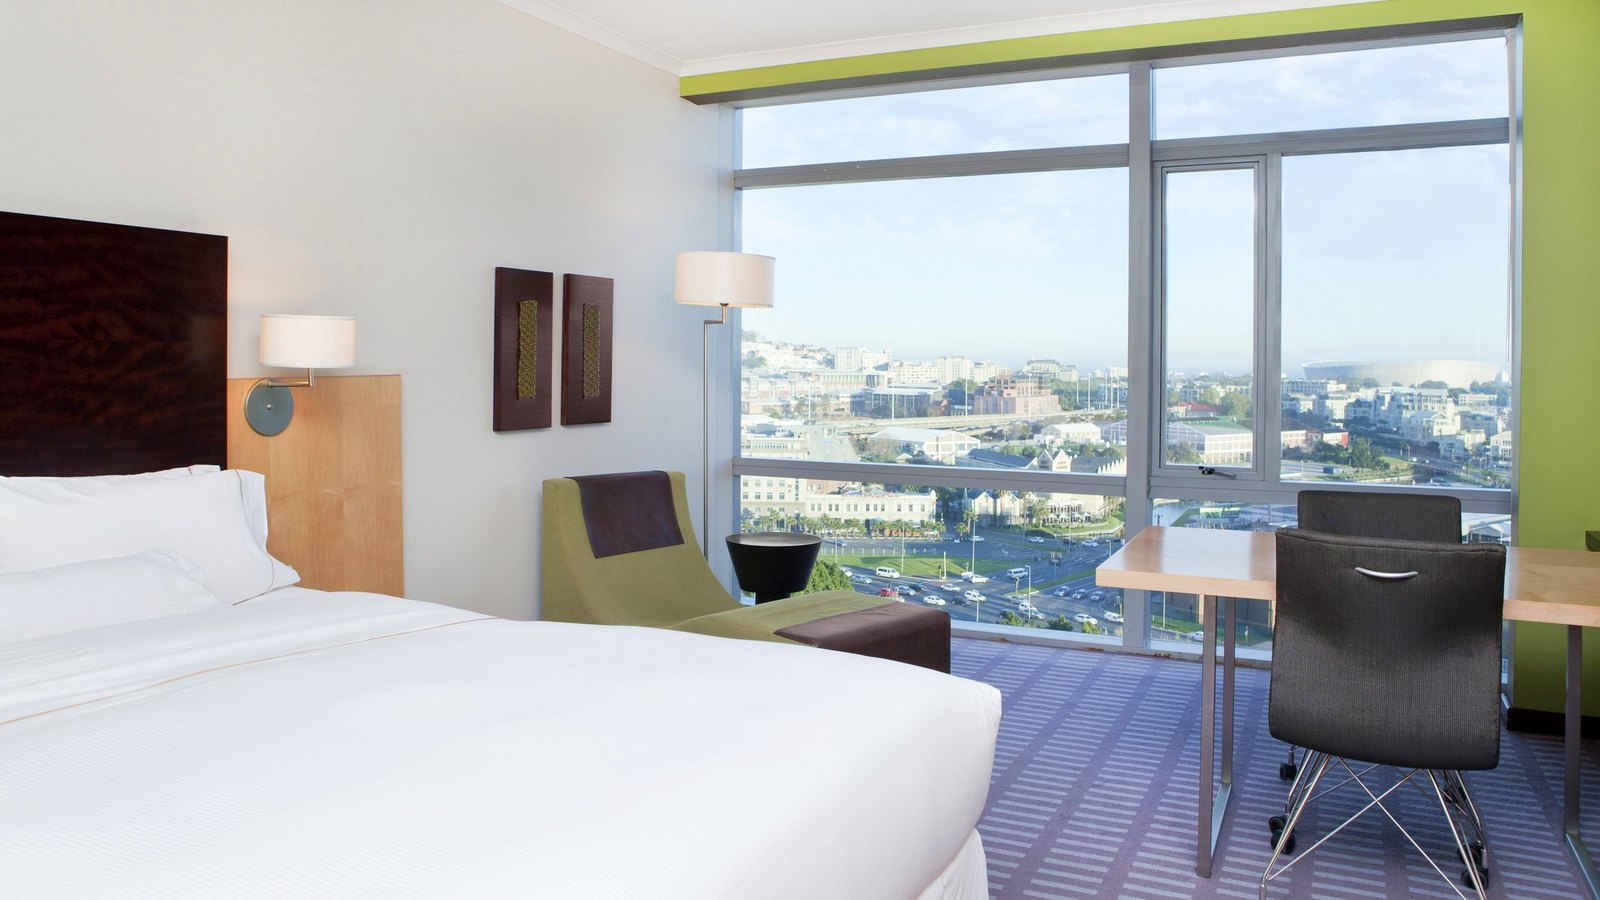 Westin Cape Town Executive Club Room with sea view of Cape Town Stadium